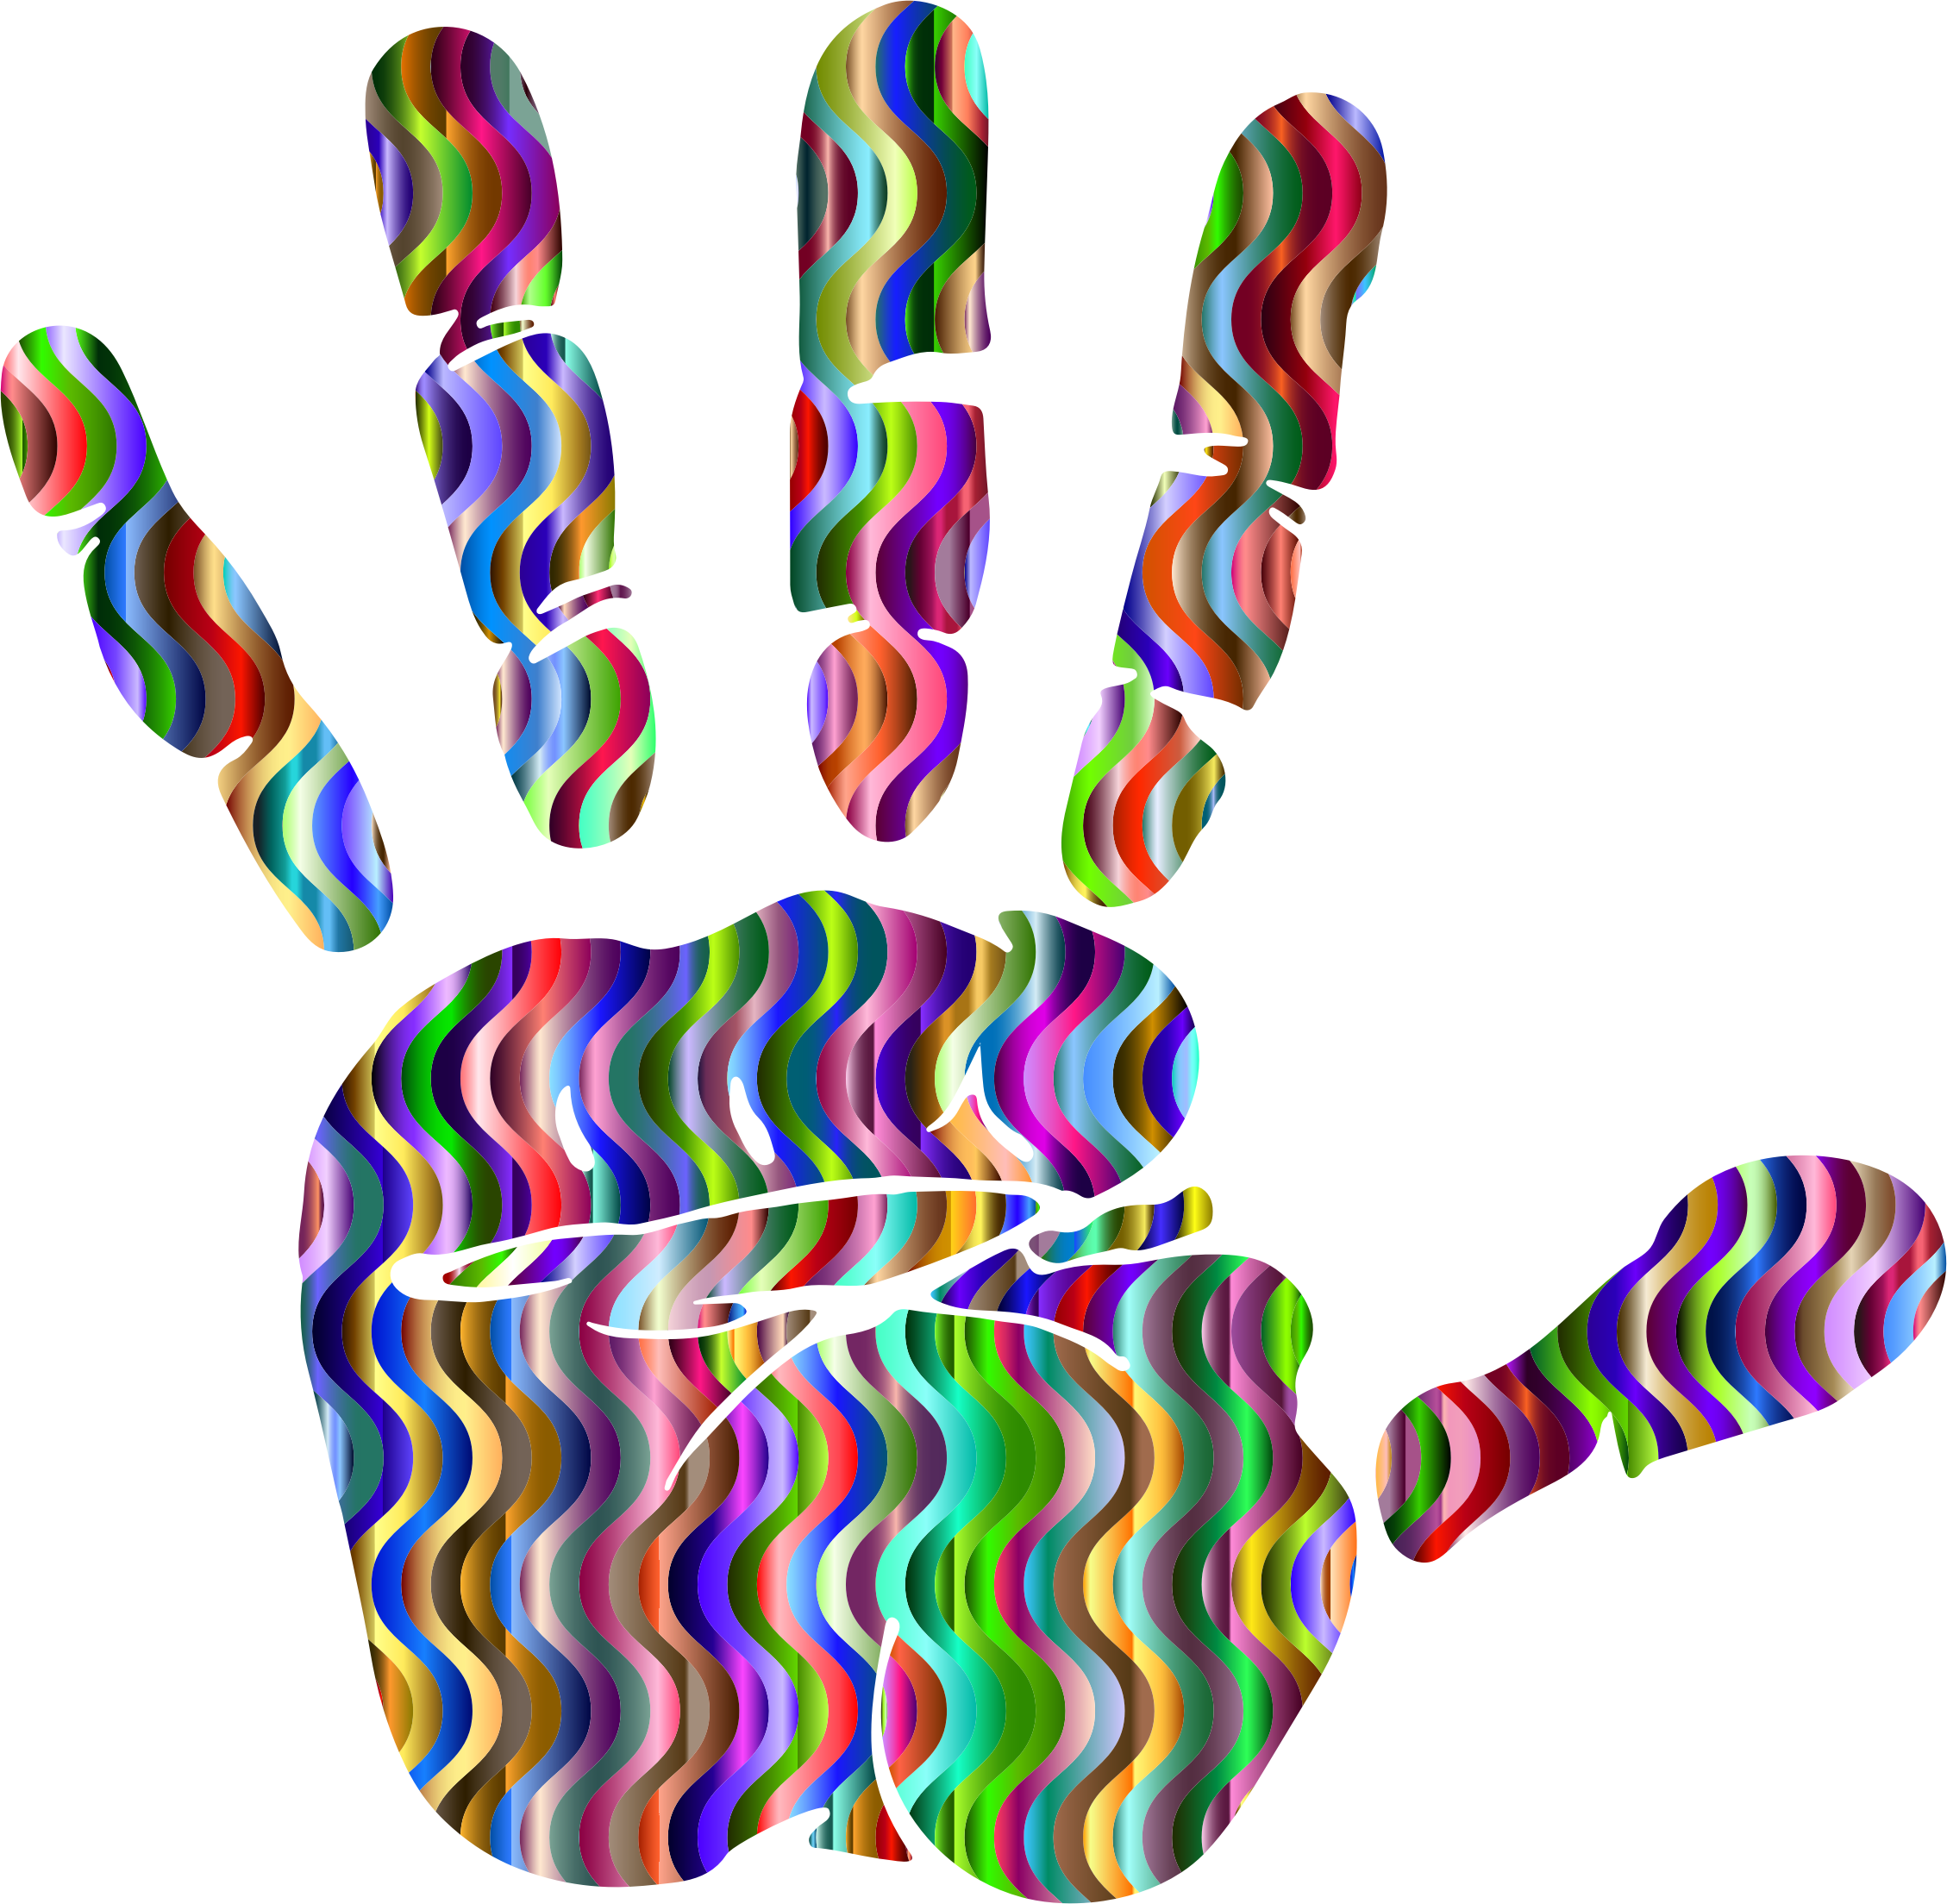 Prismatic Waves Handprint Silhouette 3 by GDJ